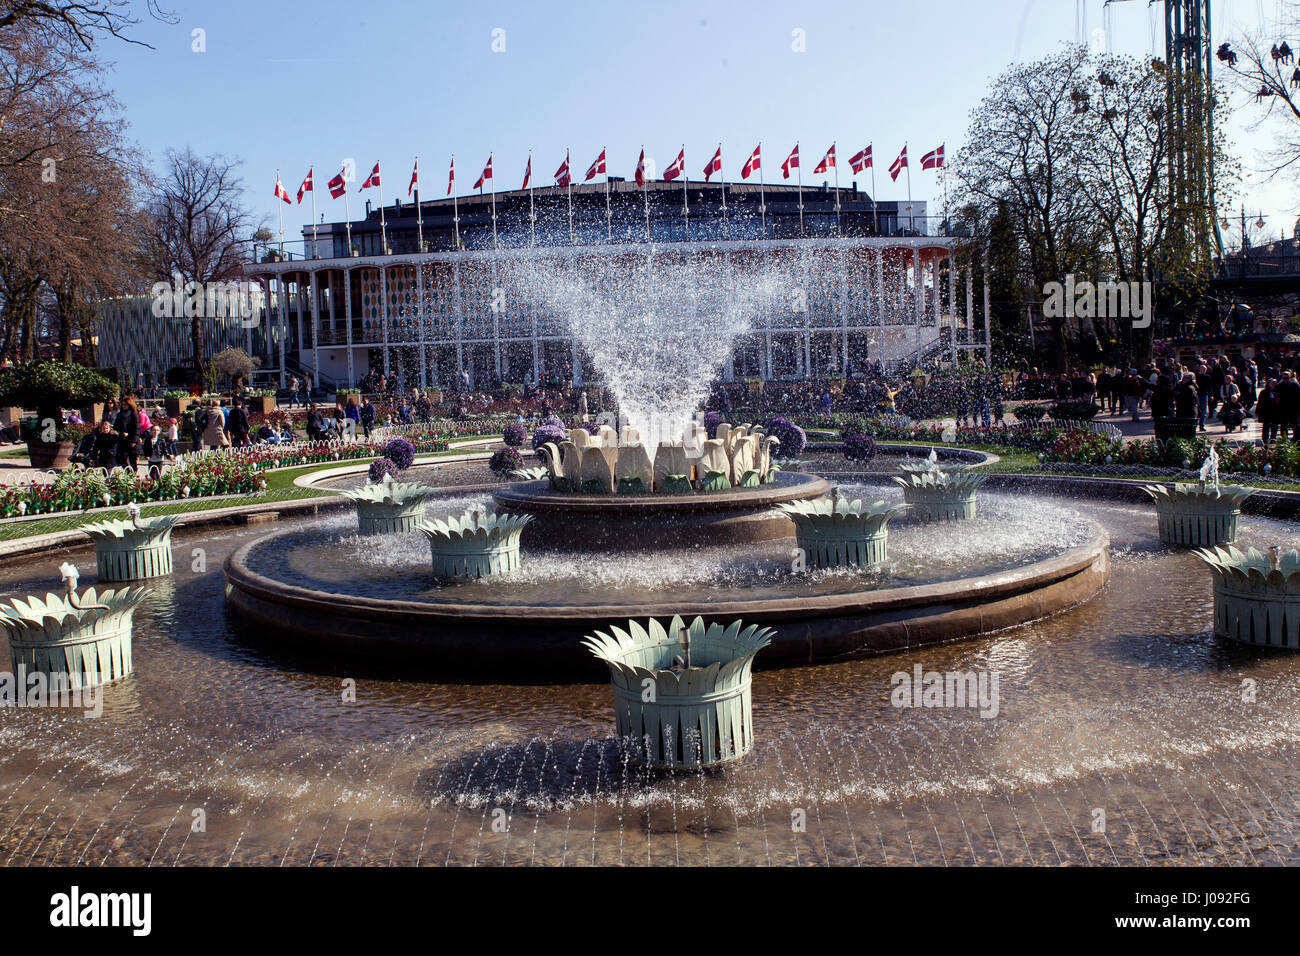 Tivoli Concert Hall with water fountains, Copenhagen - Stock Image